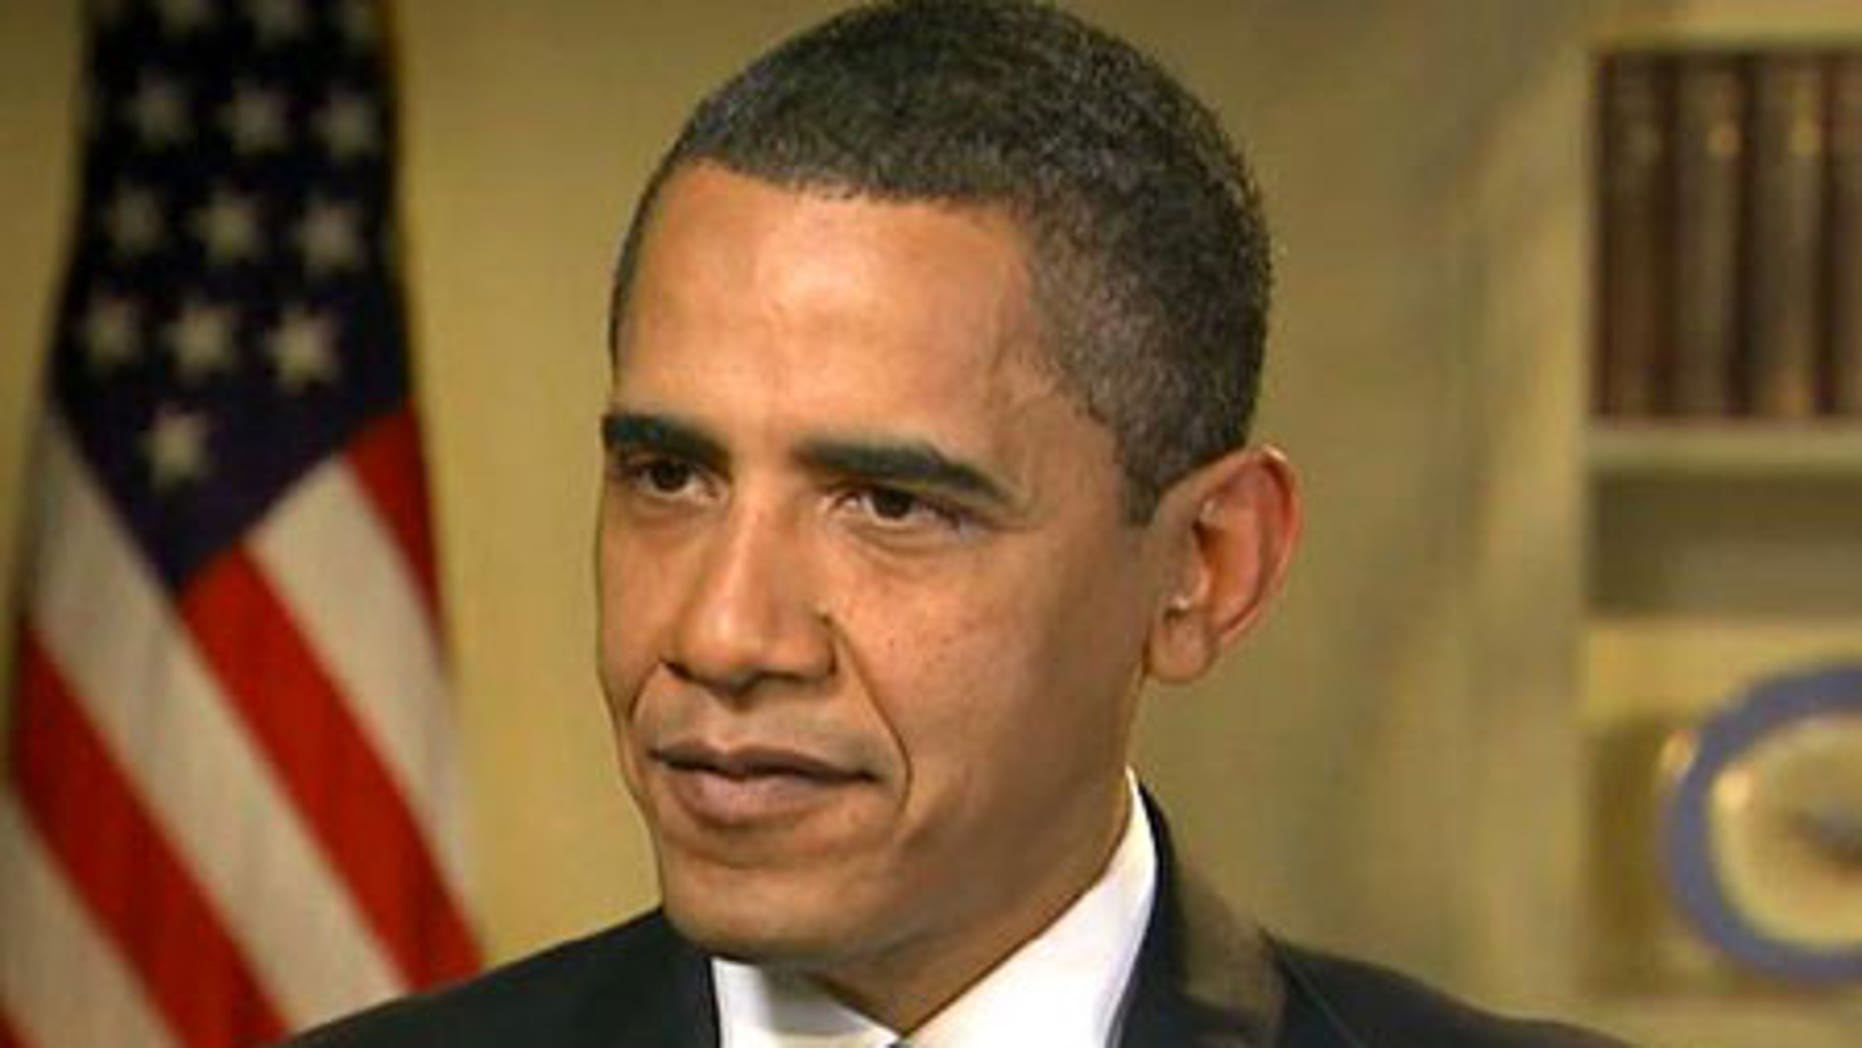 President Obama said he 'screwed up' over the nomination of Tom Daschle in his Cabinet.